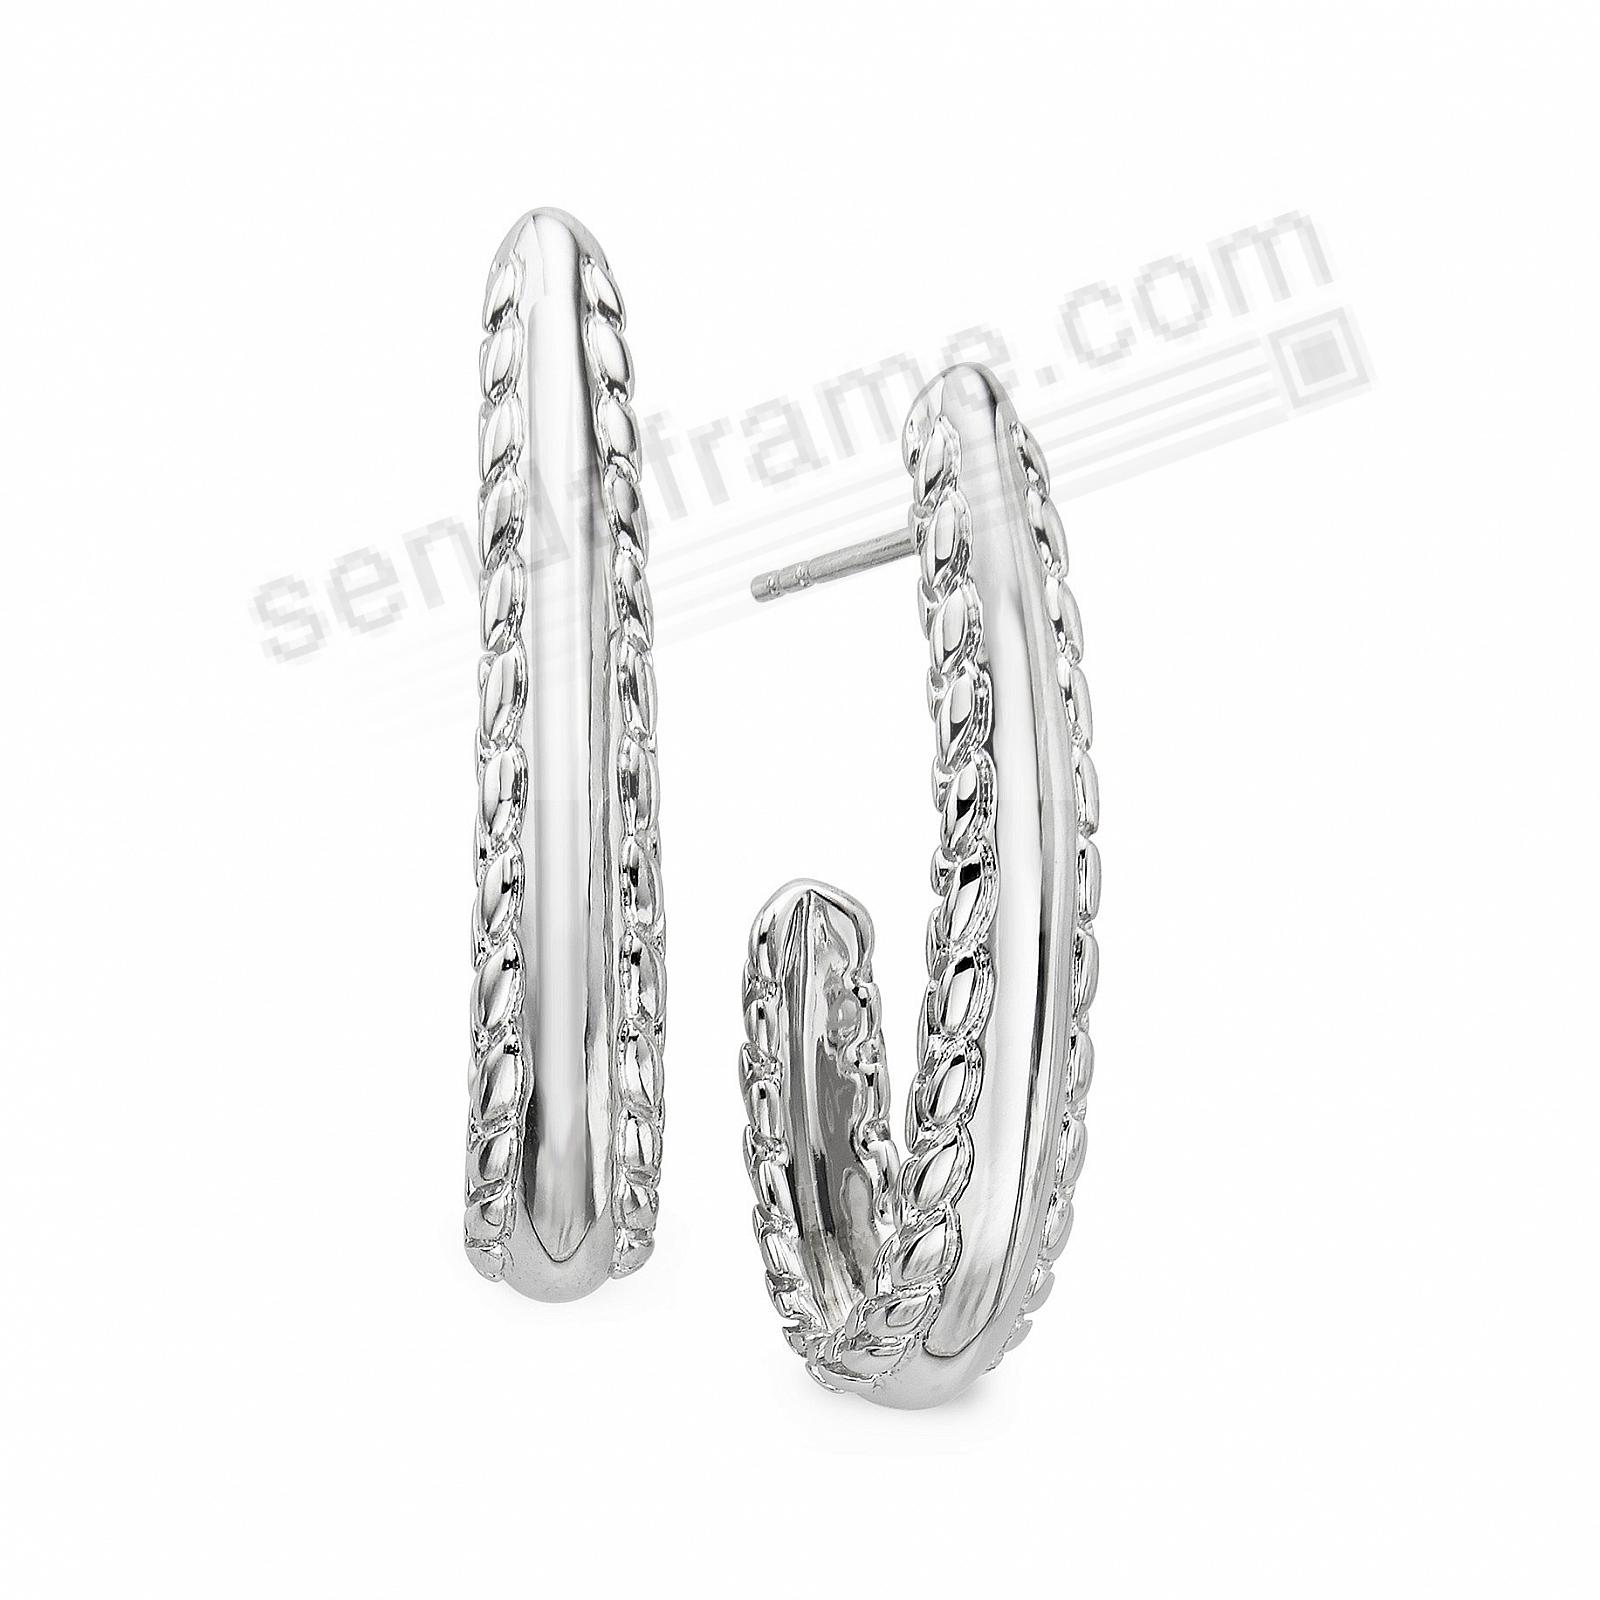 The BRAID DROP EARRINGS in Fine .925 STERLING SILVER by Nambe®